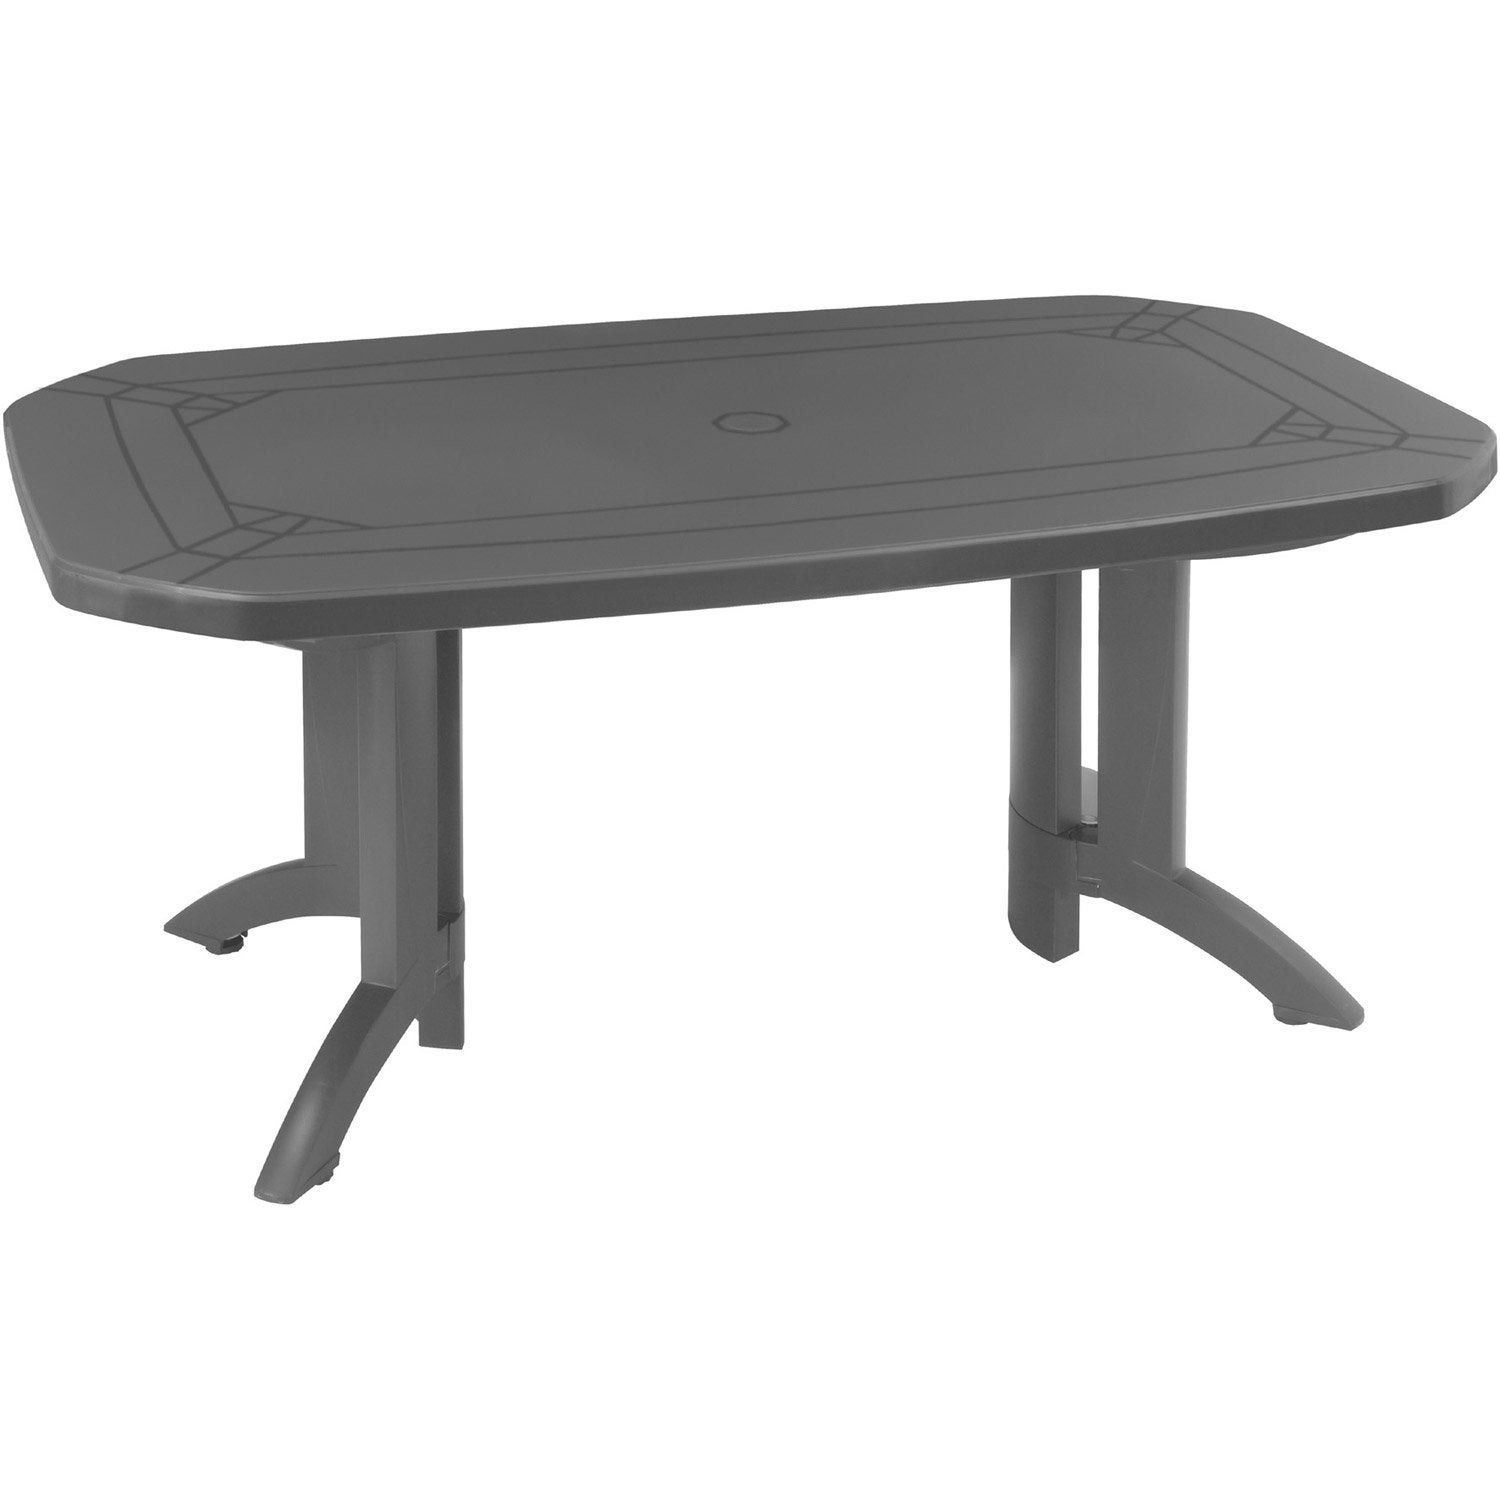 Table De Jardin Rectangulaire V Ga Grosfillex Leroy Merlin